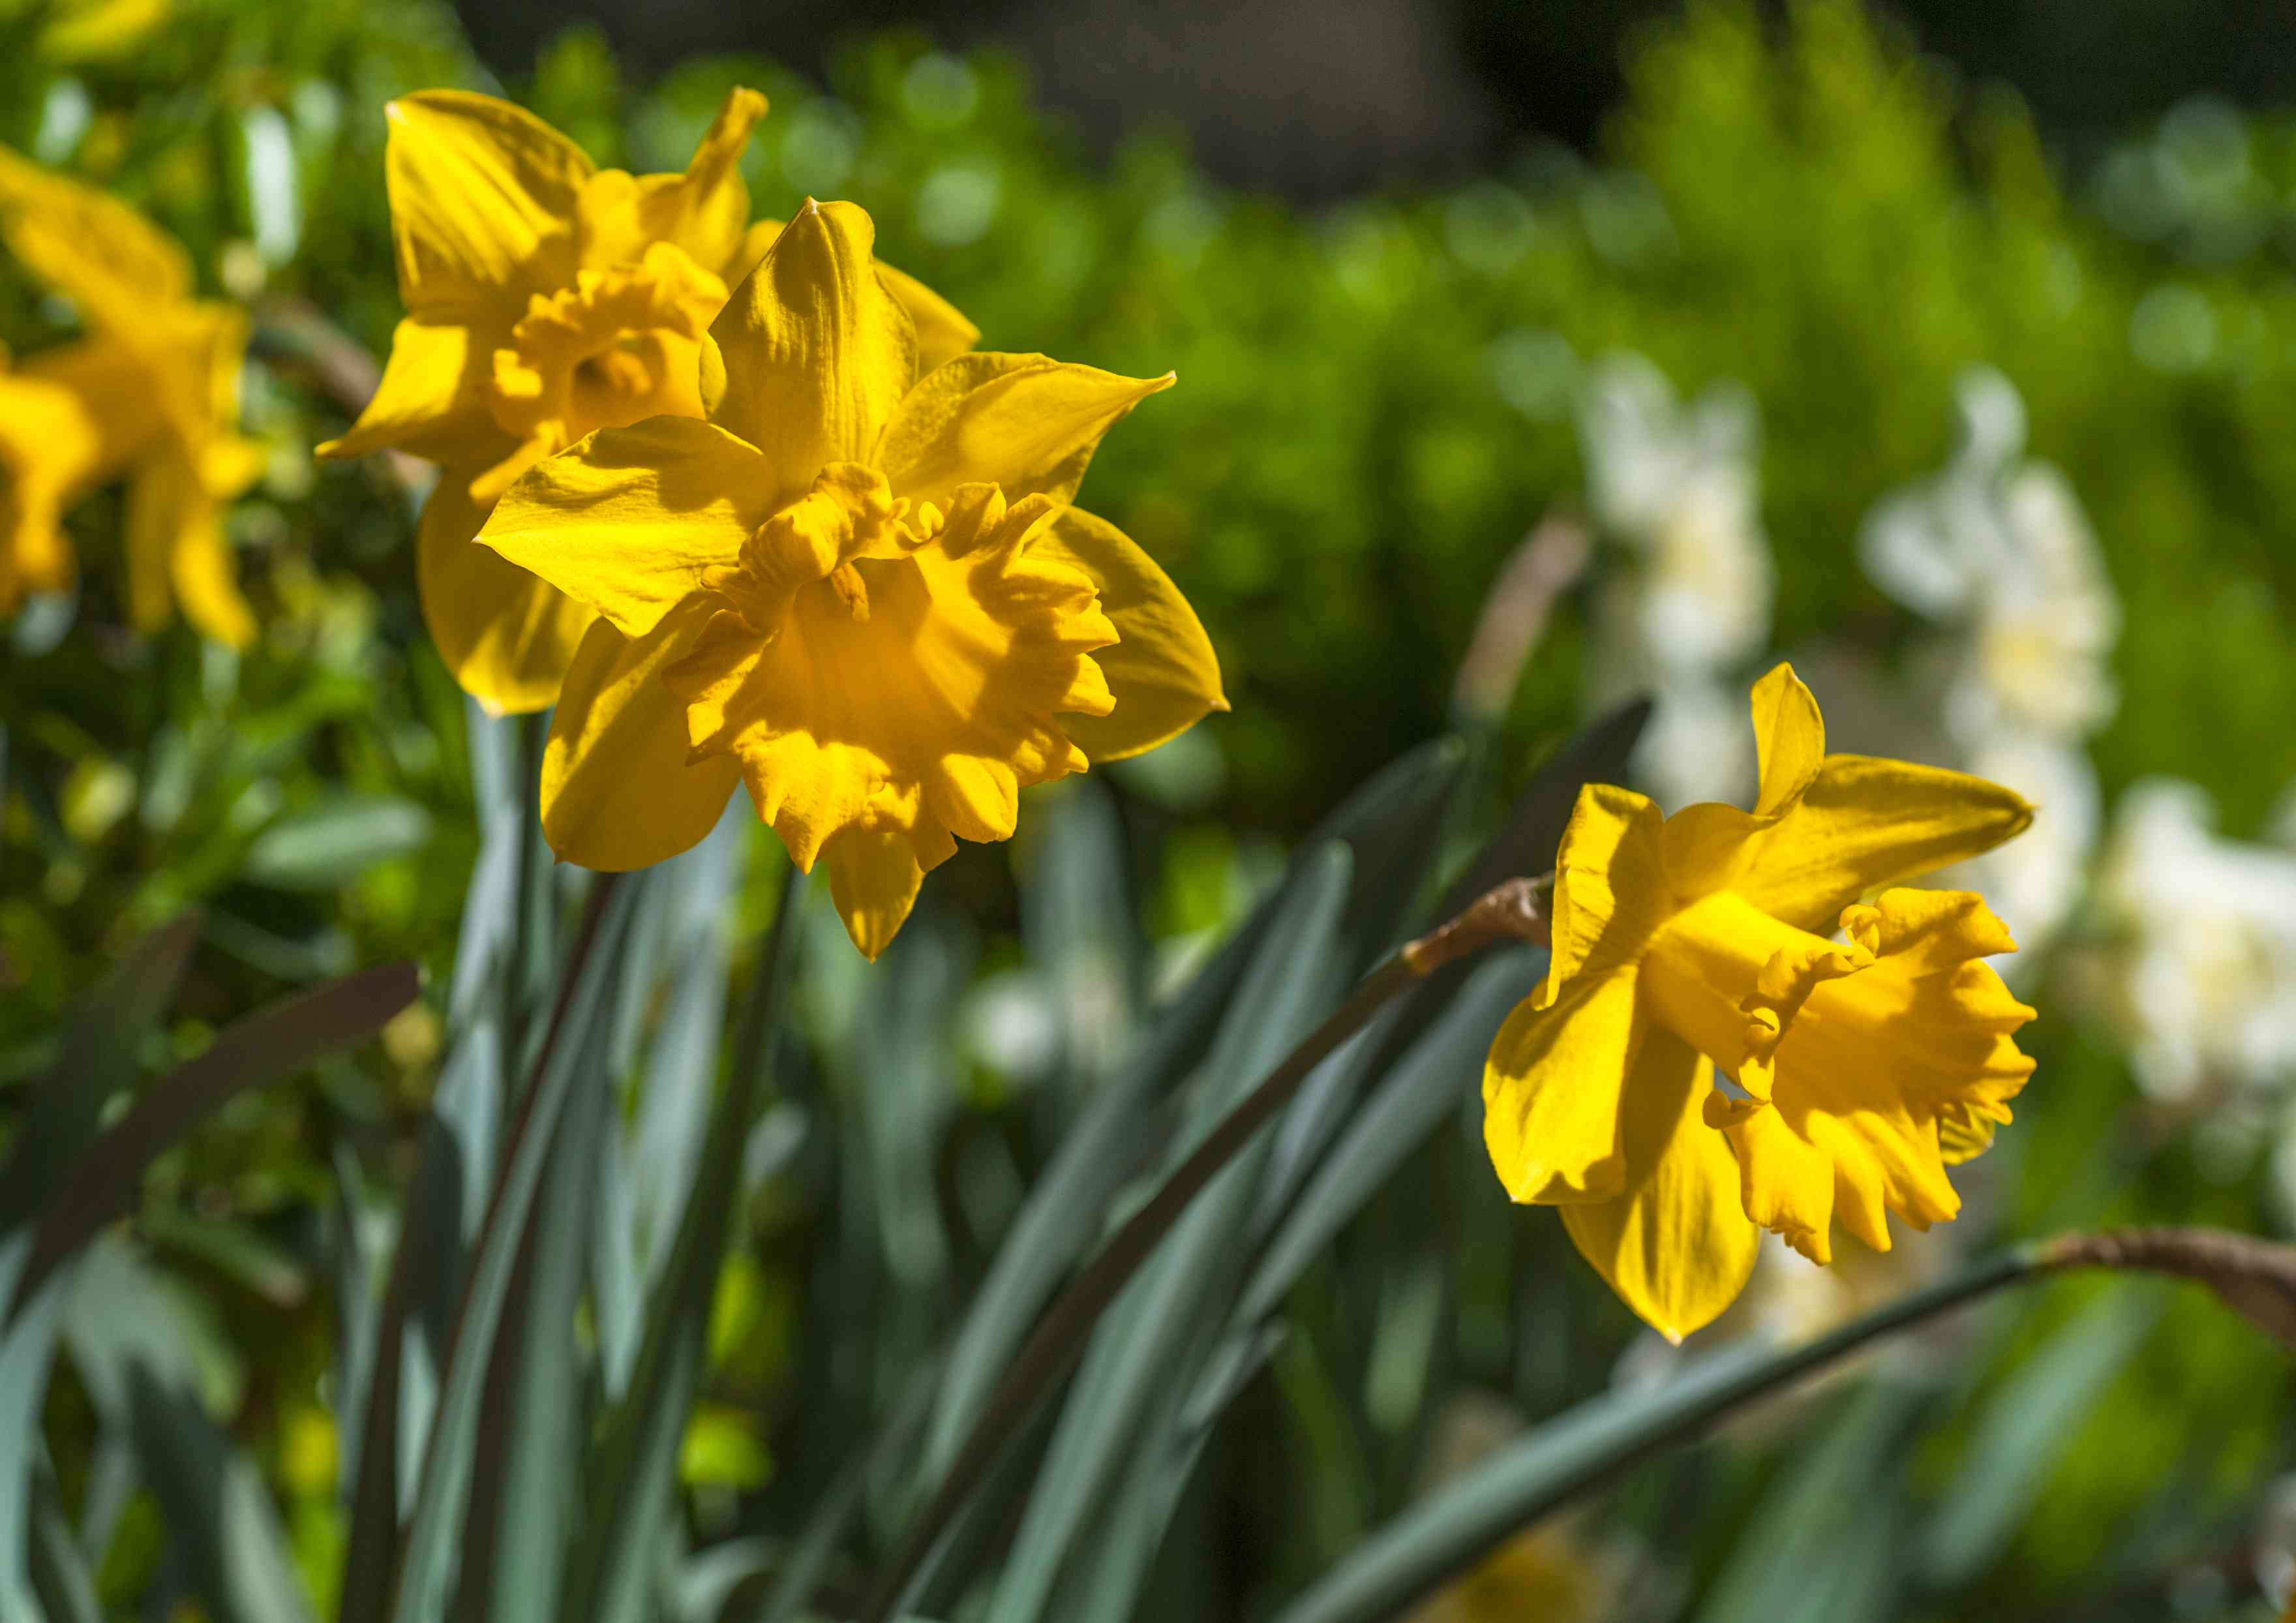 Trumpet daffodils with yellow flowers on stems